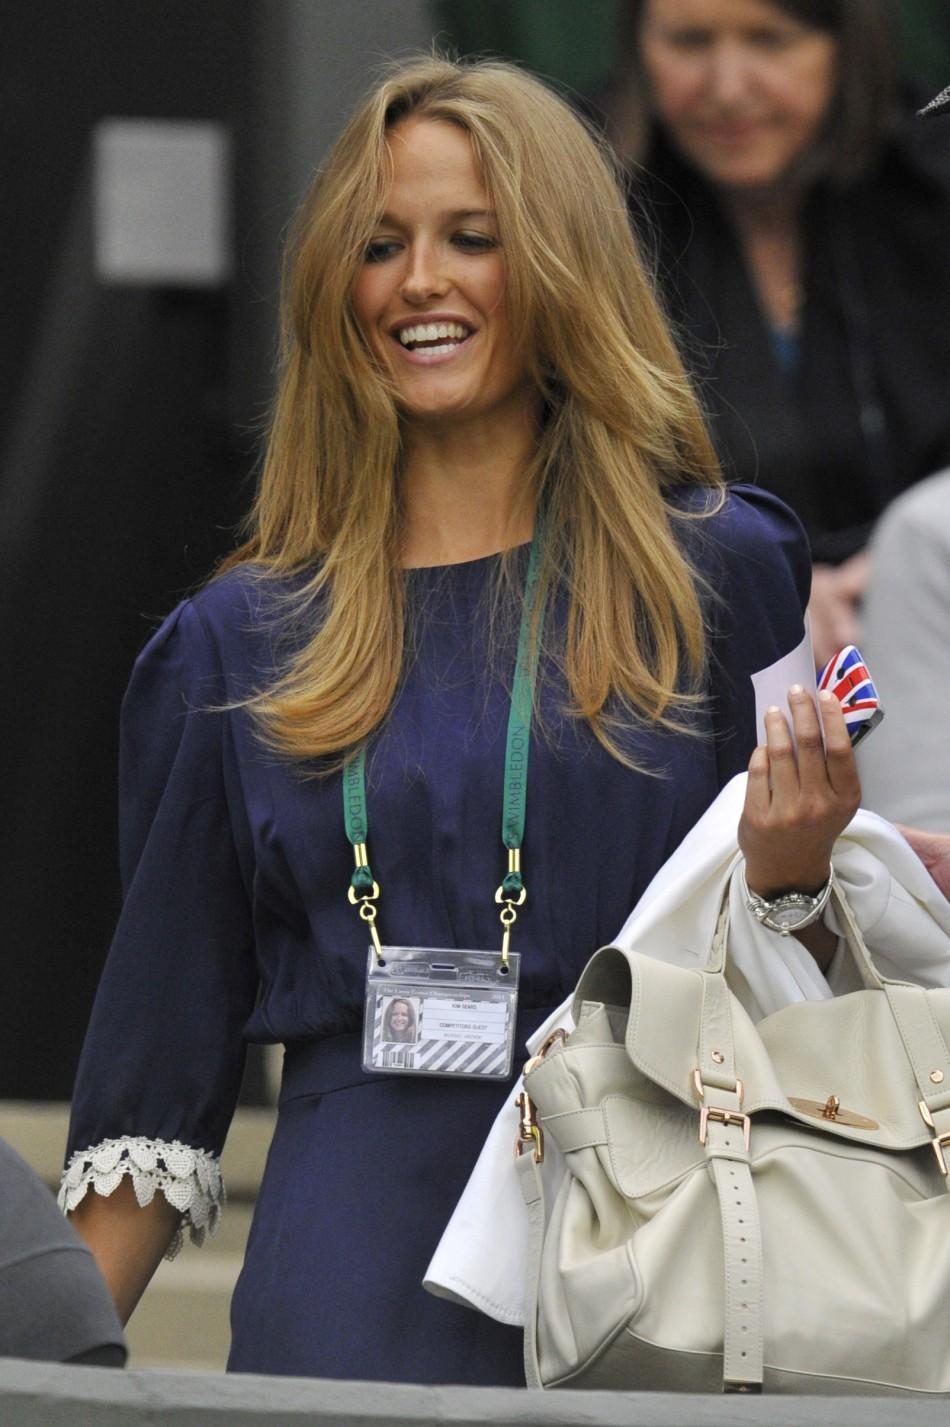 Kim Sears, the girlfriend of Andy Murray of Britain, arrives on Centre Court for the match between Murray and Ivan Ljubicic of Croatia at the Wimbledon tennis championships in London